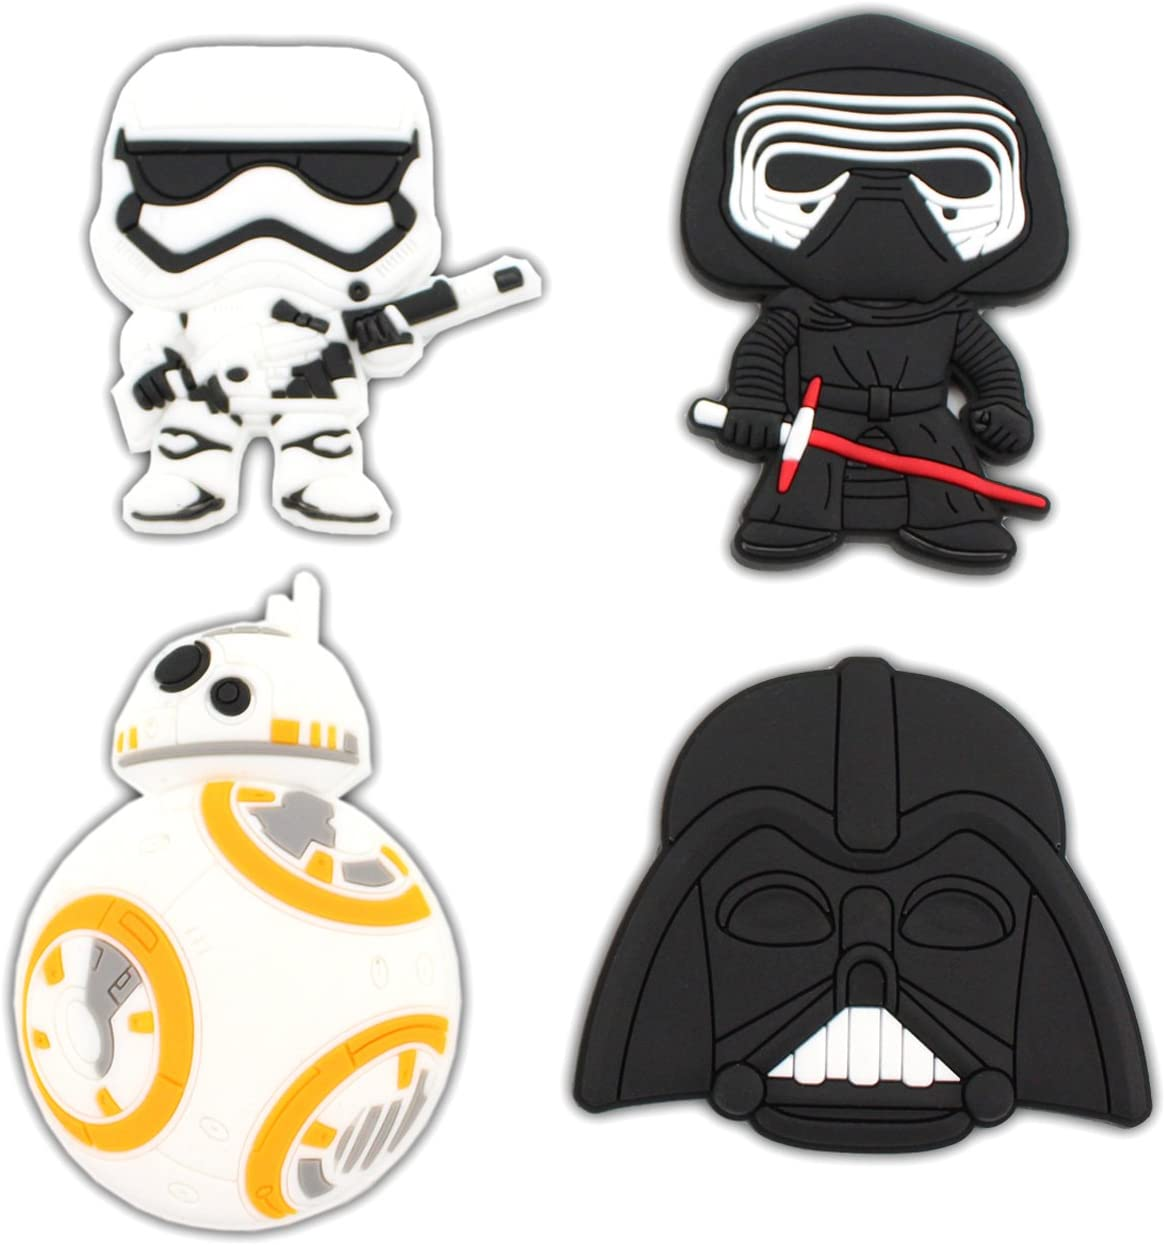 Finex - Set of 4 LARGE 3 inches - Star Wars Refrigerator Magnets Fridge Magnet Set for Locker